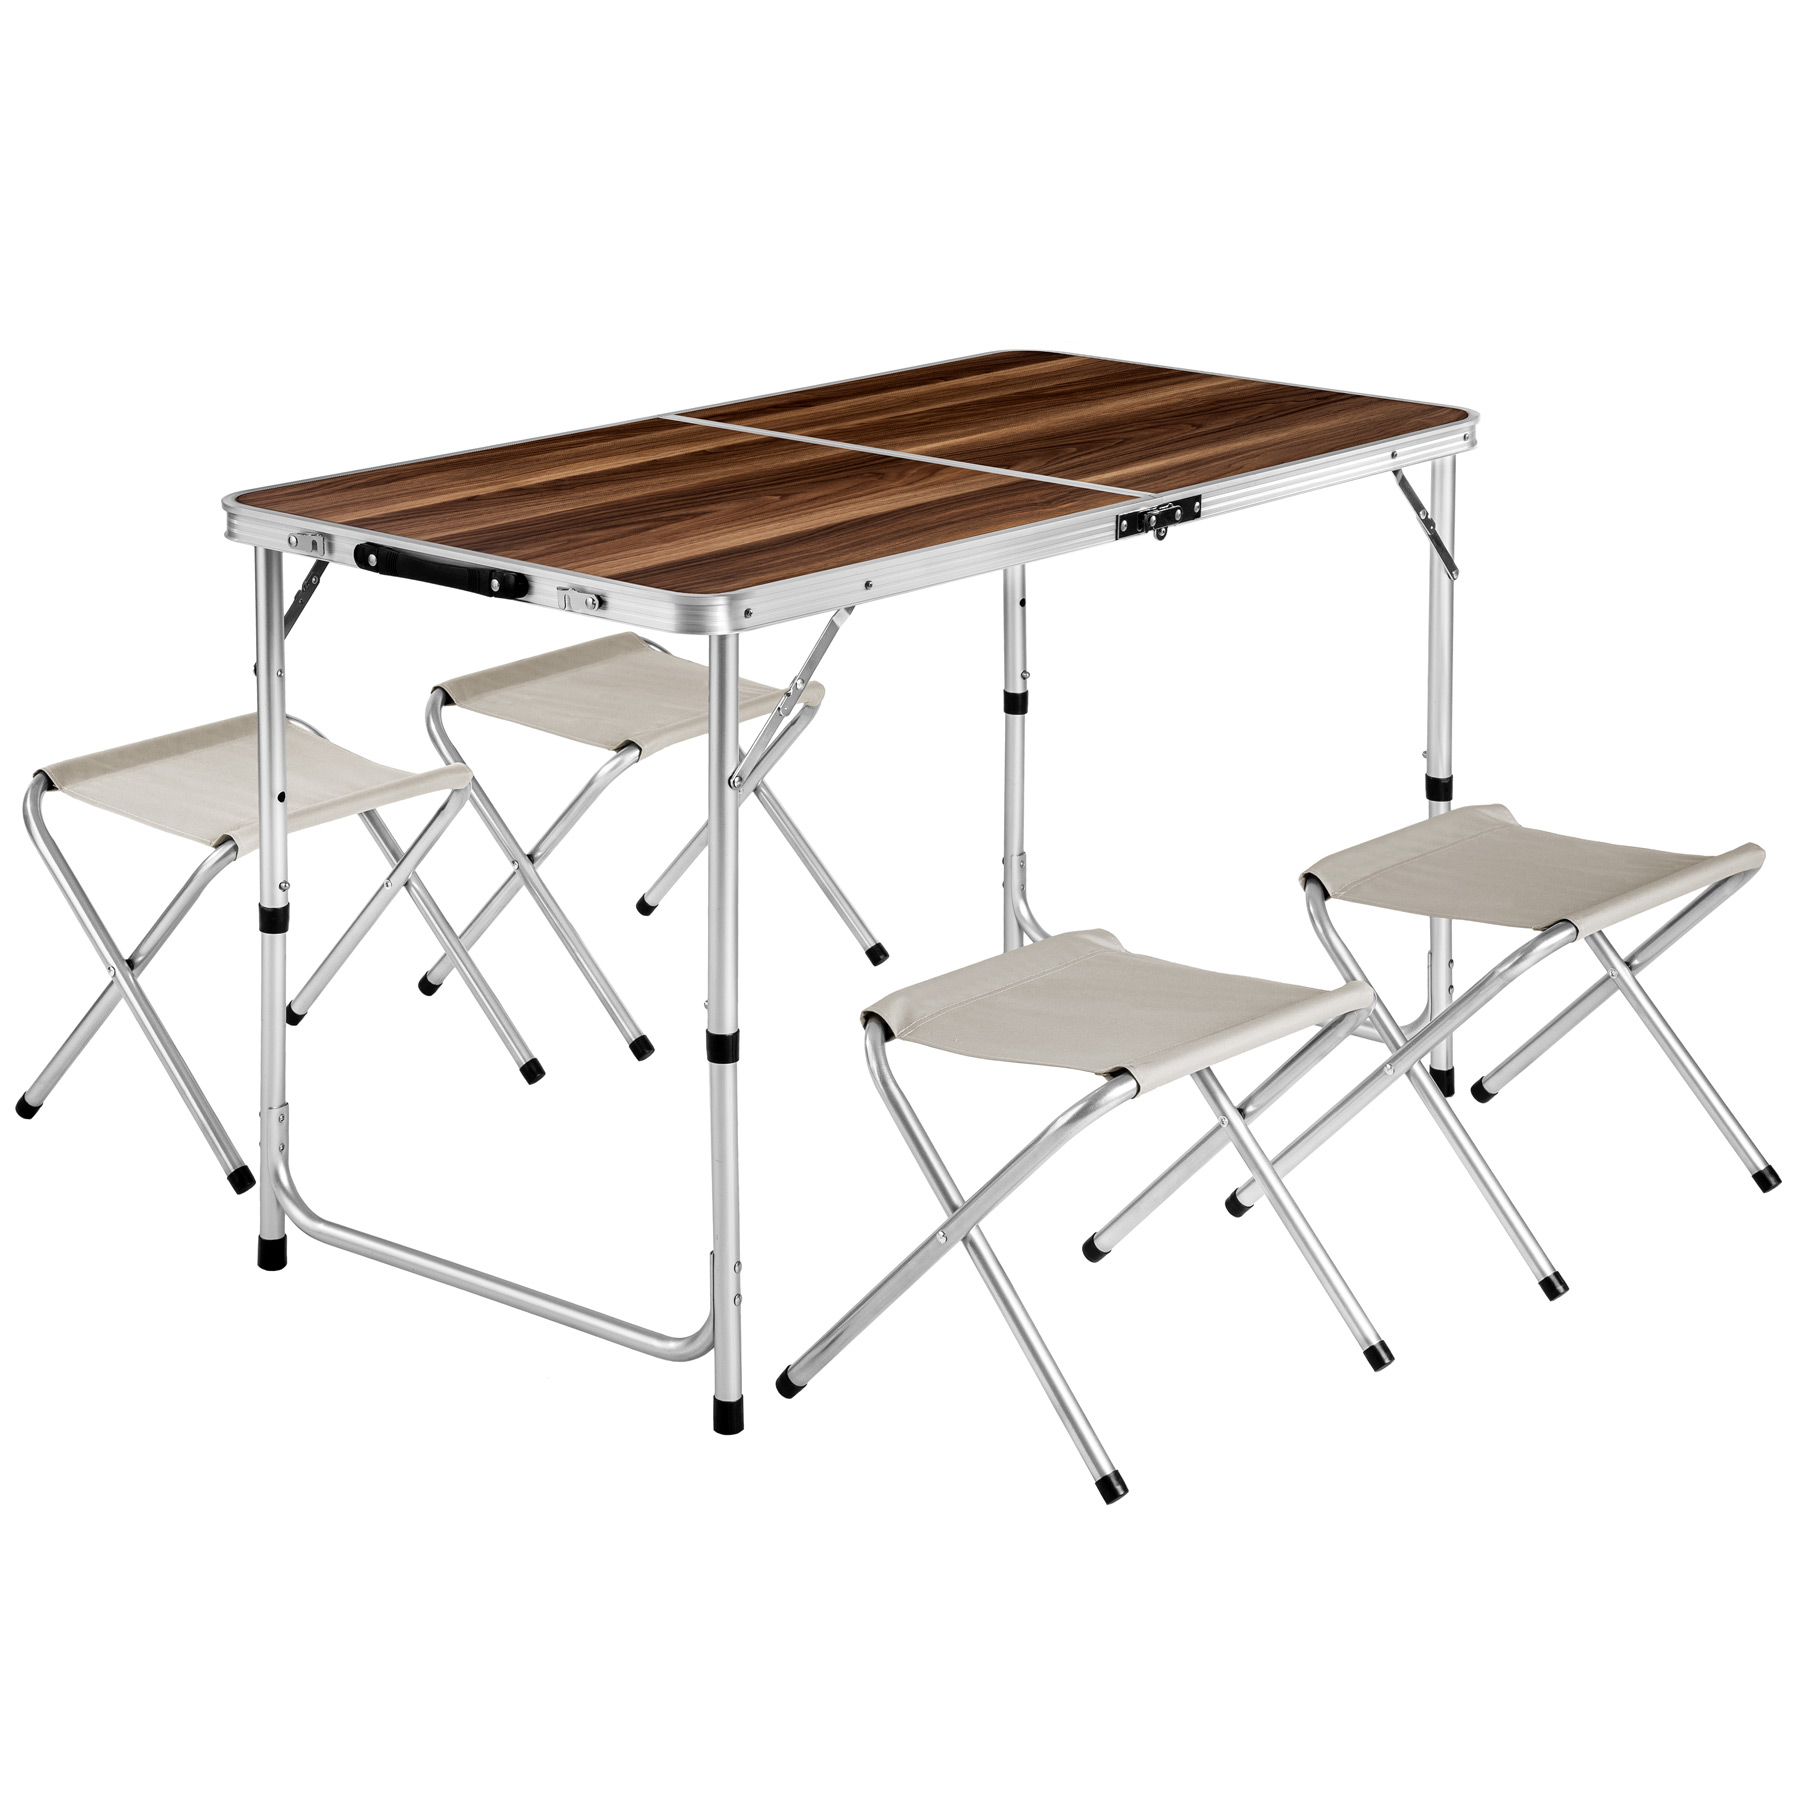 Eensemble table pliante valise avec 4 tabourets camping for Table pliante but